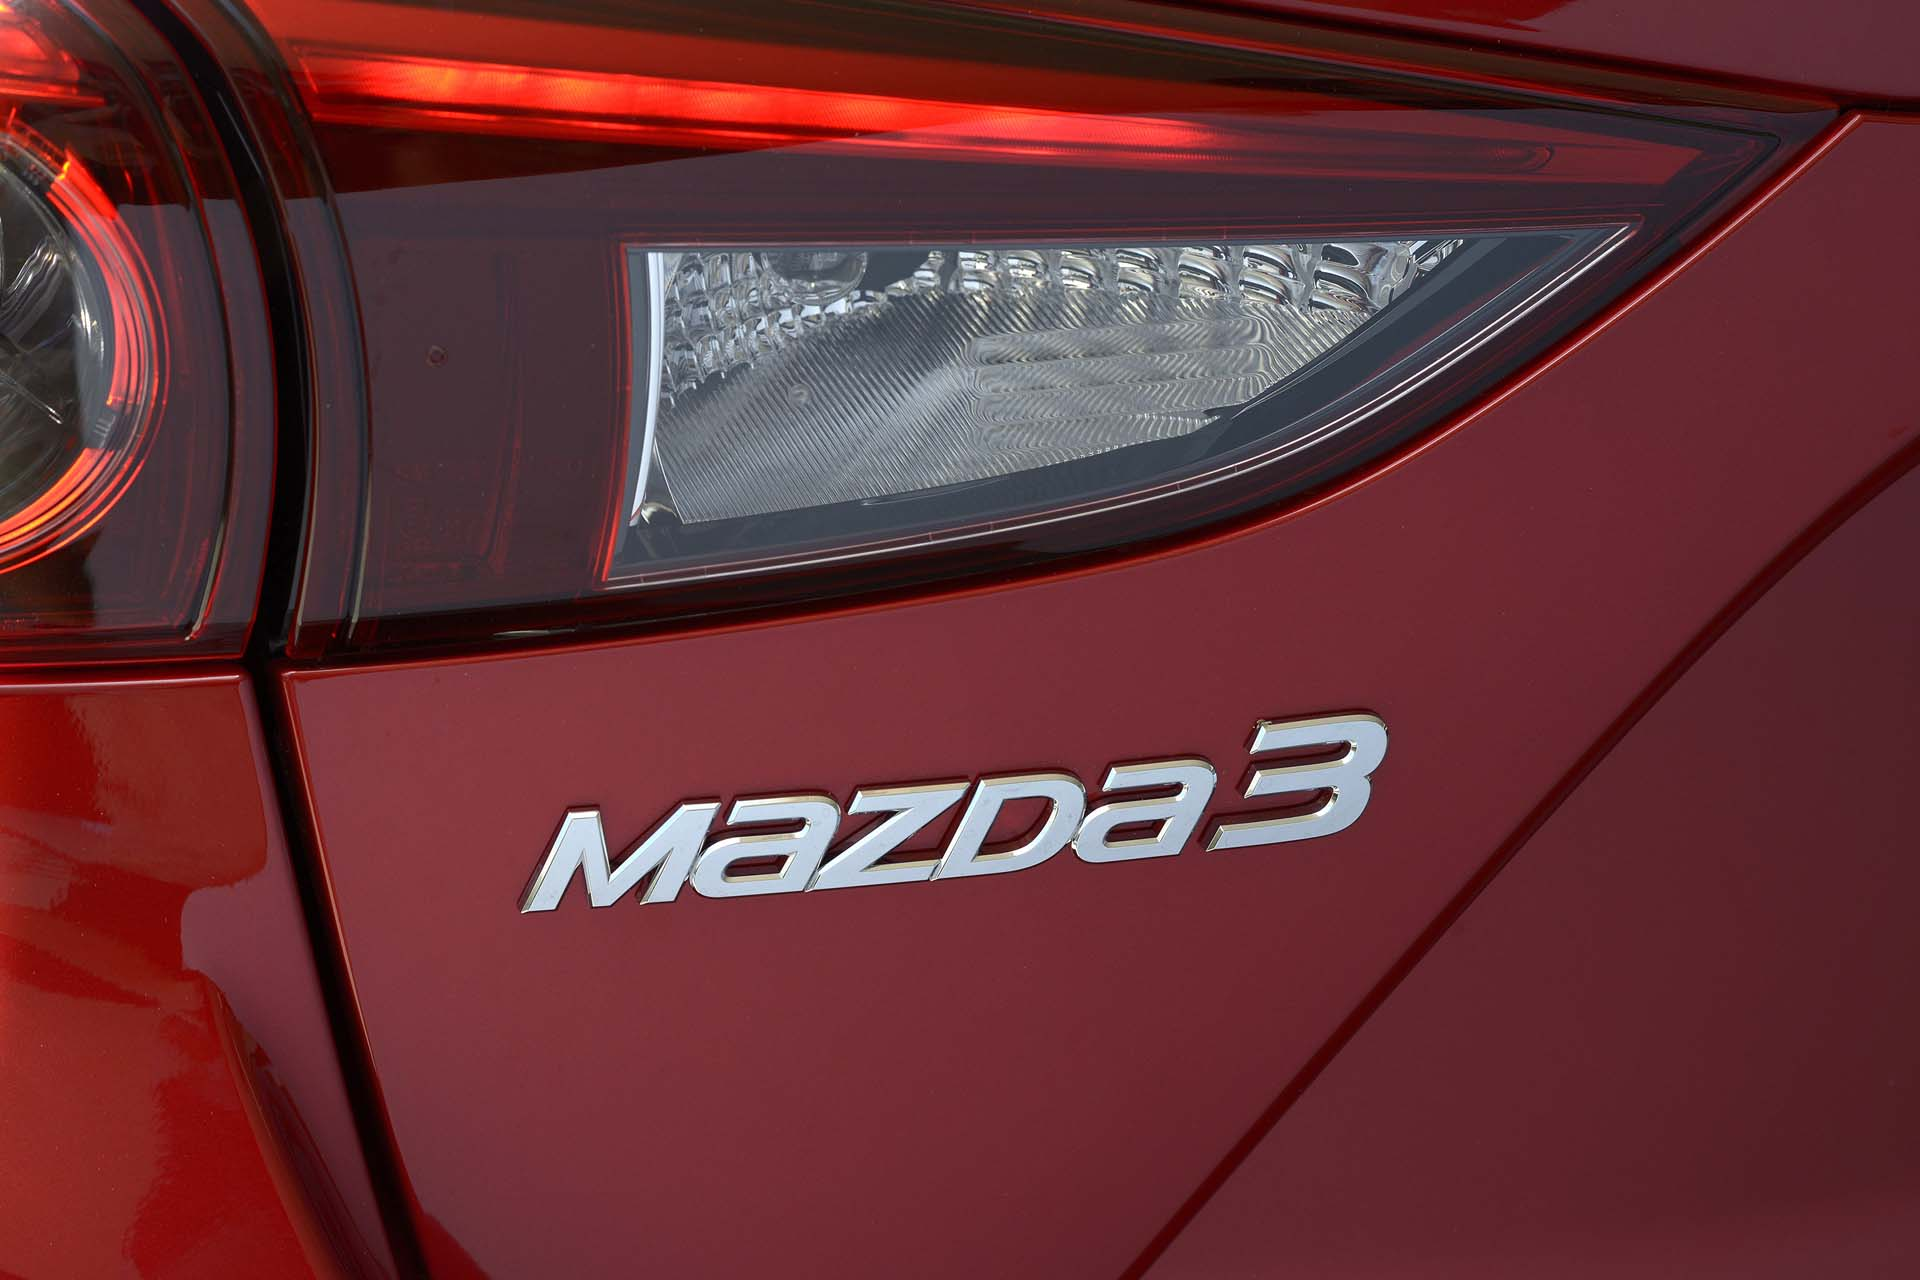 2019 Mazda 3 Coming With World First Hcci Tech